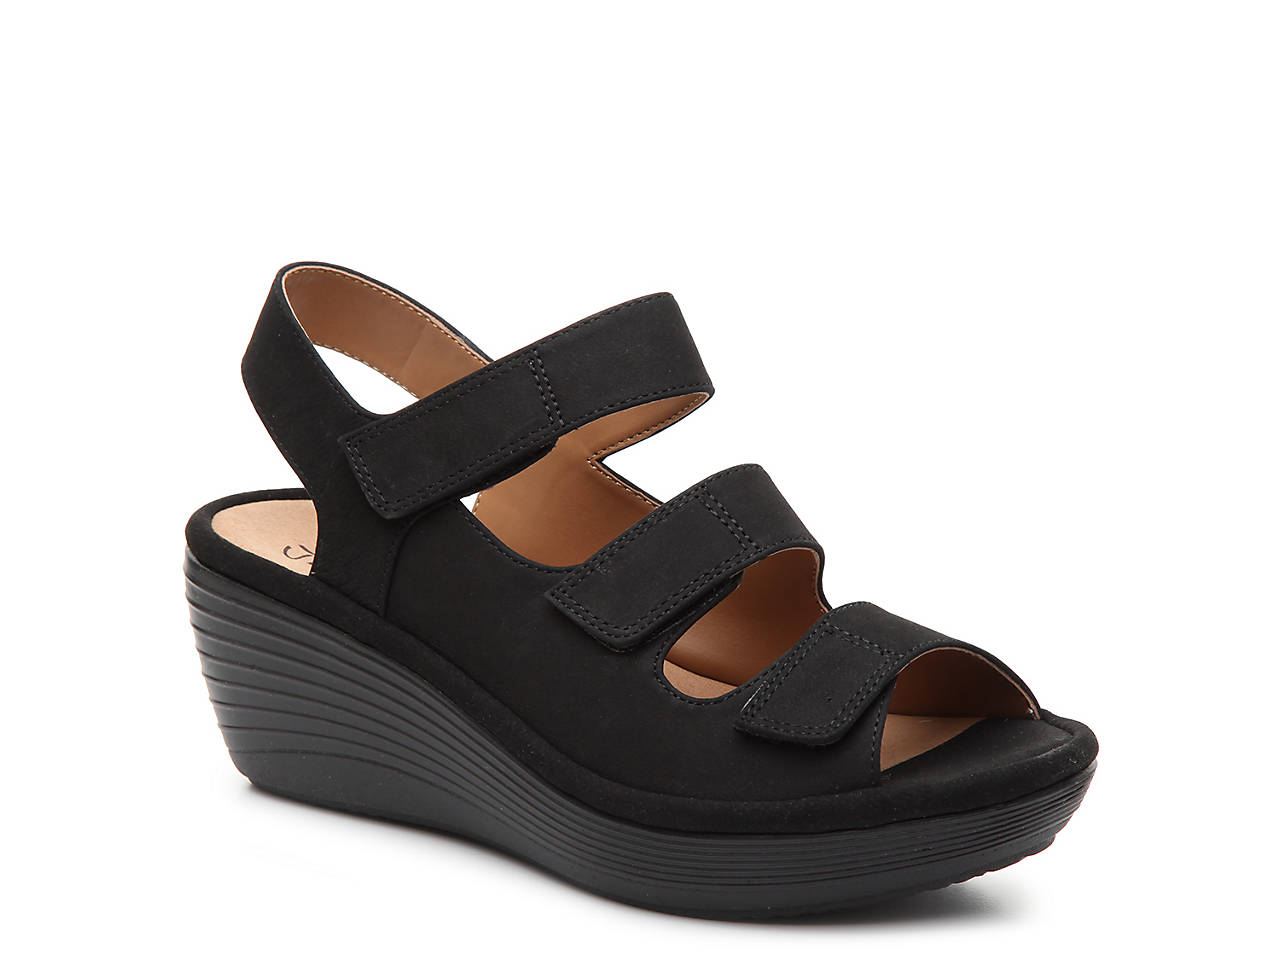 Clarks Reedly Juno Wedge Sandal (Women's) sNruSomSIU